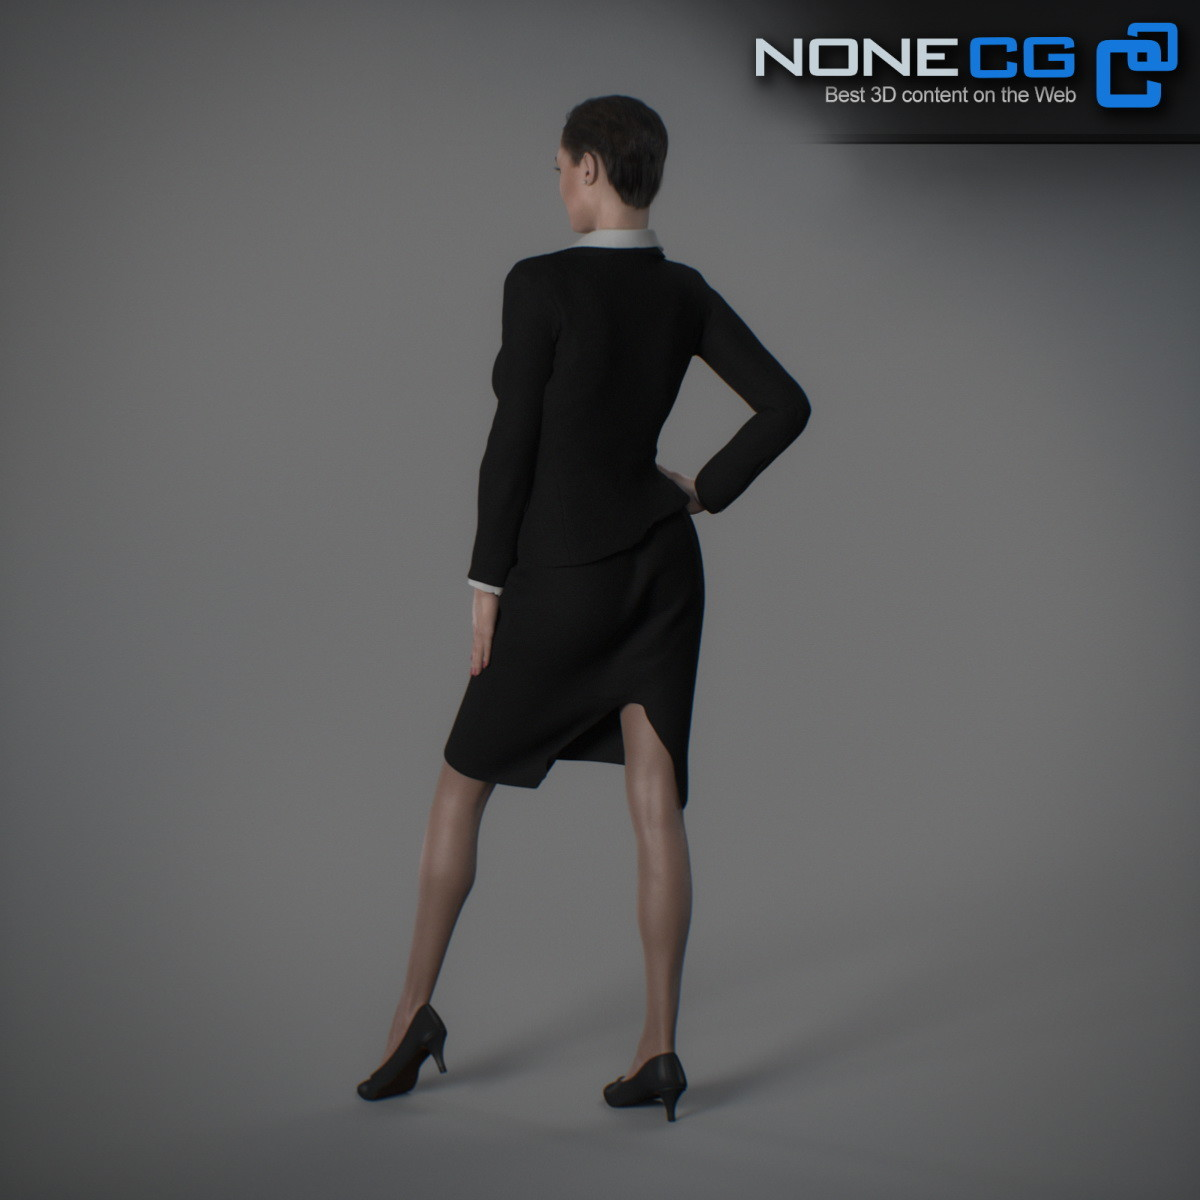 RIGGED ADULT FEMALE CHARACTER